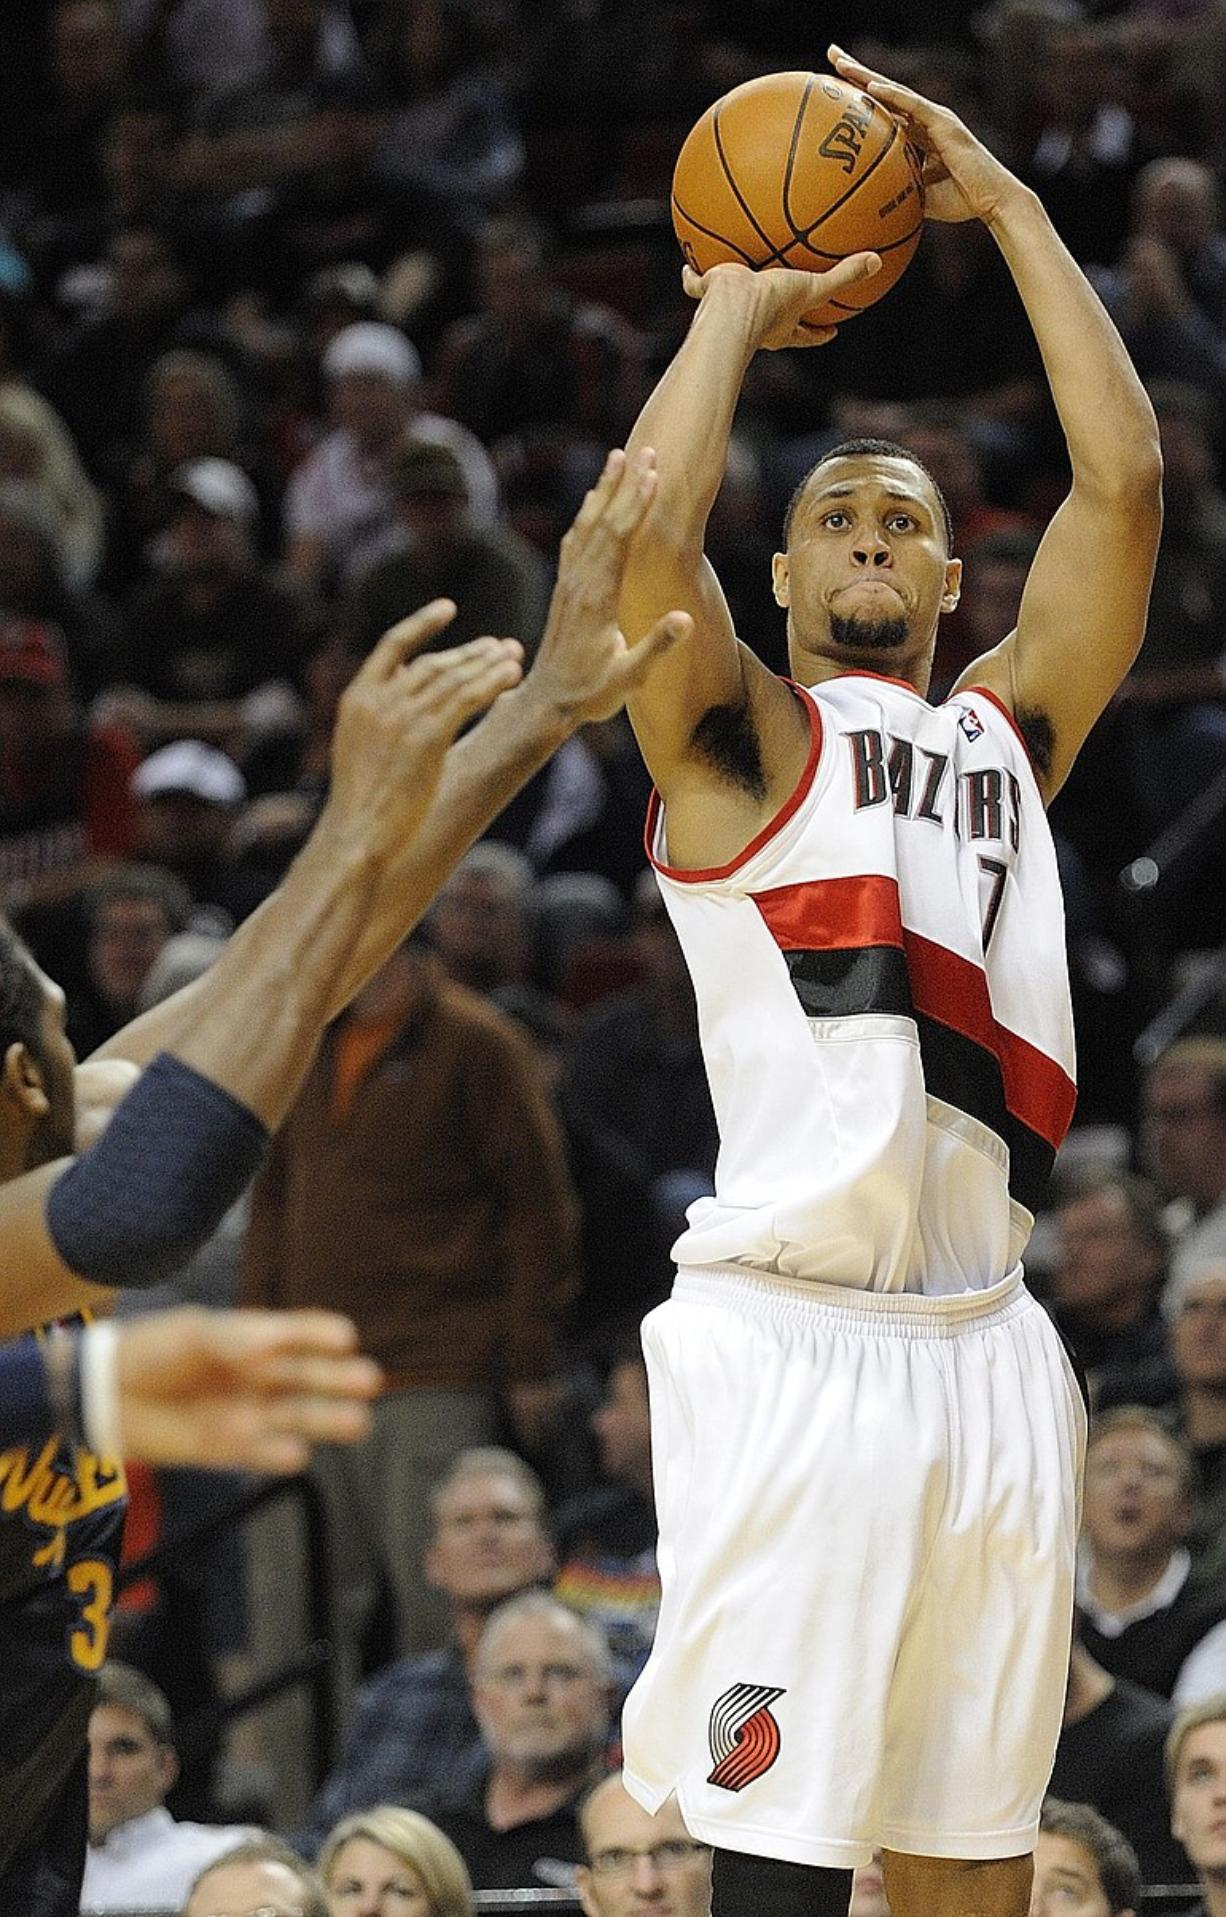 The first people Brandon Roy called upon learning of his third consecutive selection to the NBA All-Star Game were his parents.